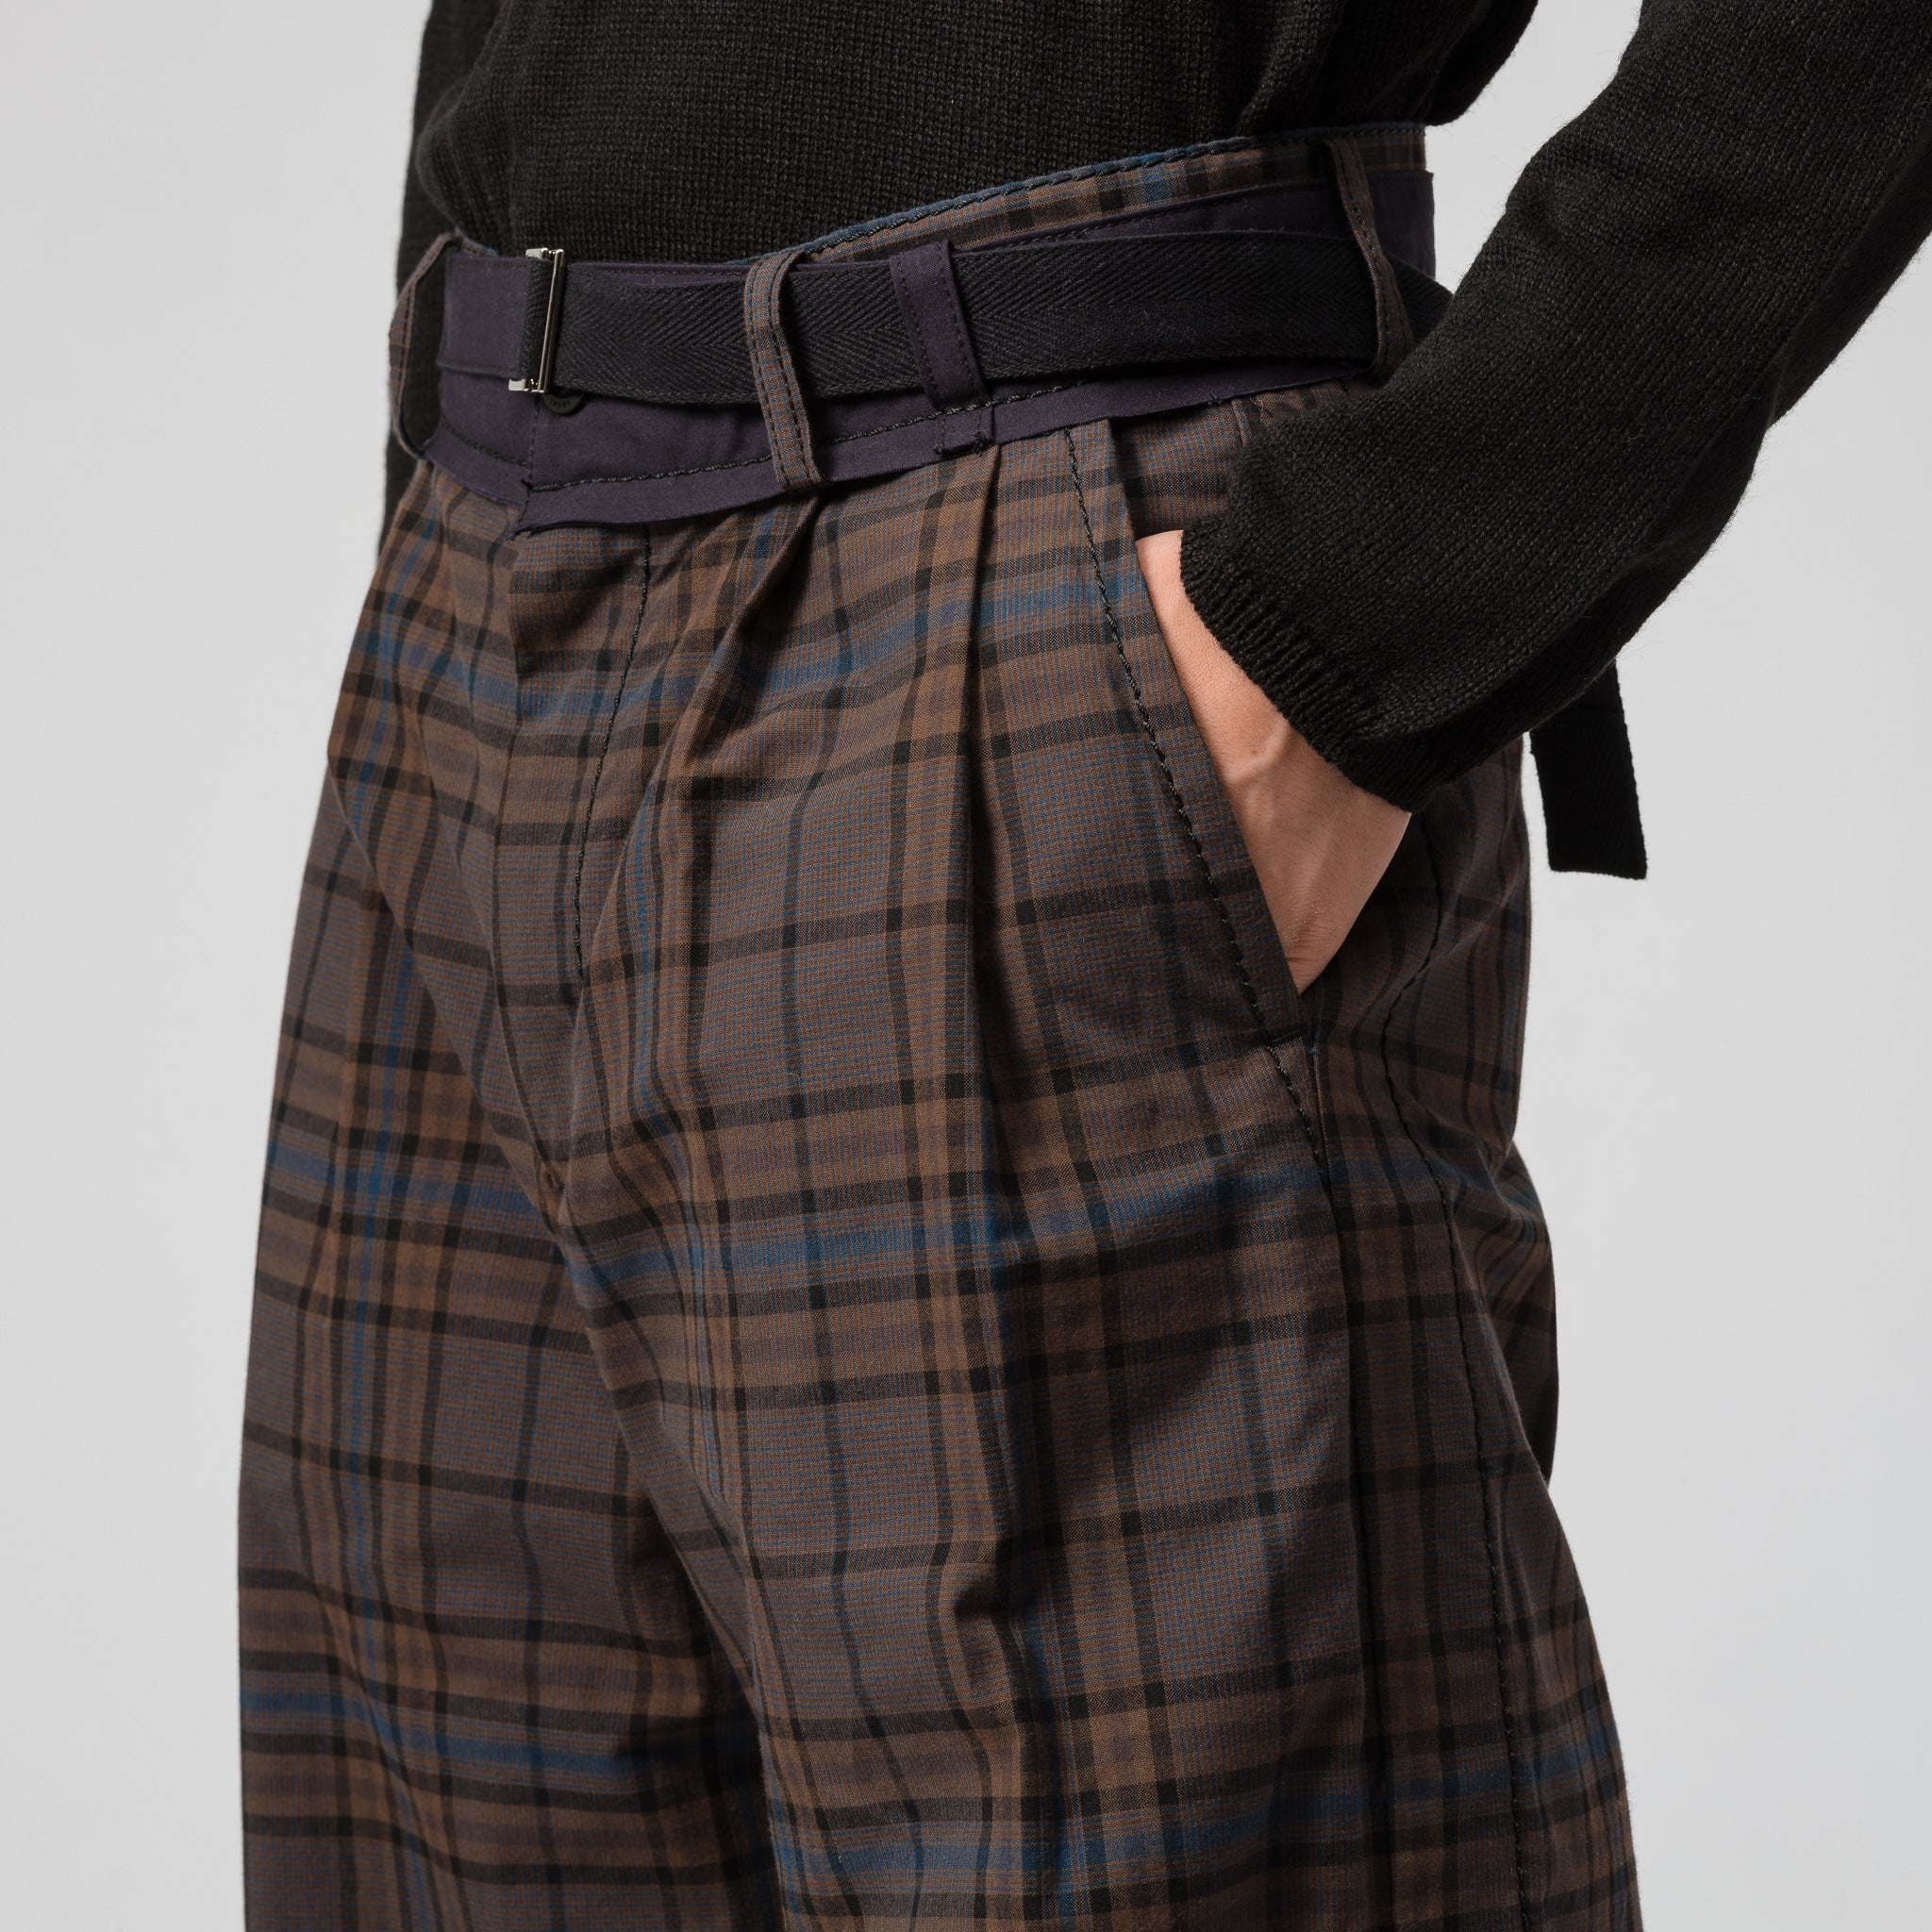 Belted Wide Leg Pant in Brown/Blue Plaid